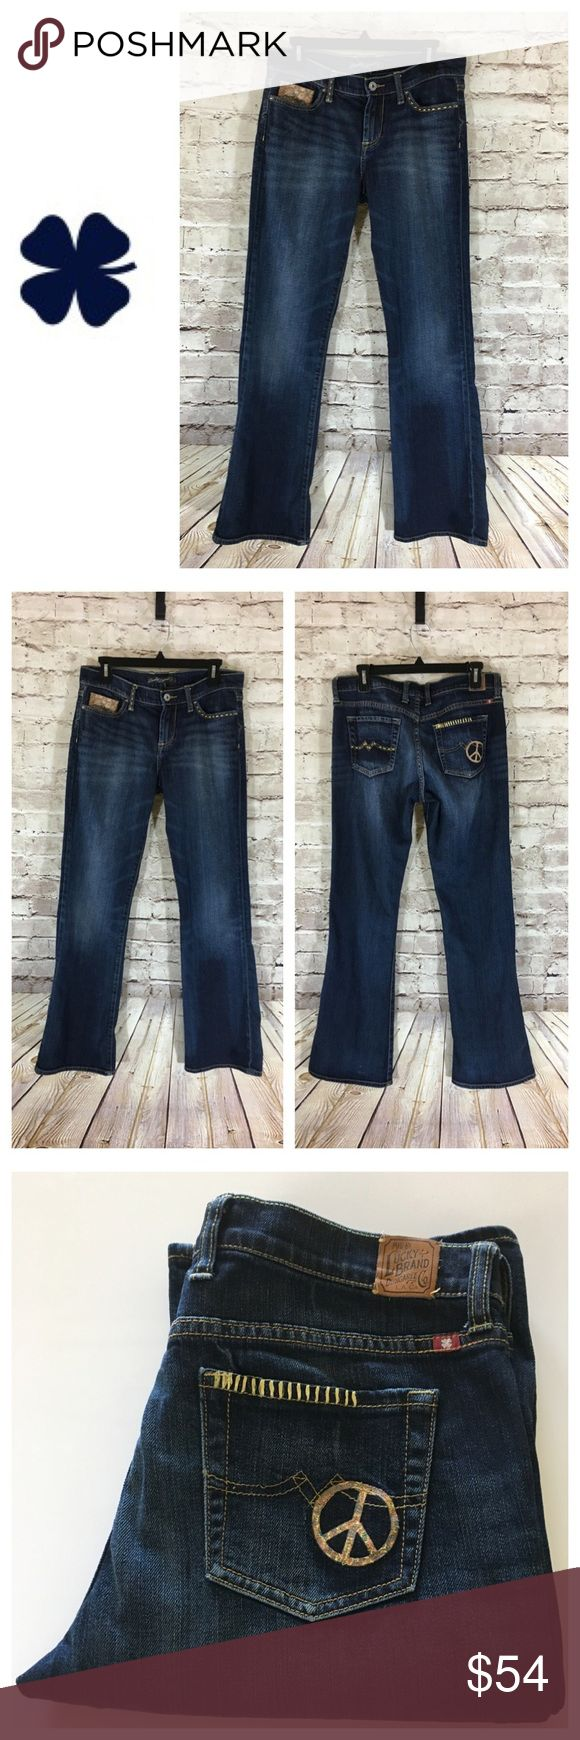 """💸😻Lucky Brand Sweet n' Low Bootcut Jean sz 8/29 💸😻Lucky Brand Sweet n' Low Bootcut Jean sz 8/29 inseam 31 1/2"""" and rise 9"""". Leg width opening is 9 1/2"""" across. Measurements are approximate. Up for sale is a beautifully detailed pair of Lucky 🍀 Brand jeans accented with Peace symbol on right pocket, gold stitching throughout and front coin pocket. Extremely unique with eye catching details! Love em! 👖❤️ Lucky Brand Jeans Boot Cut"""